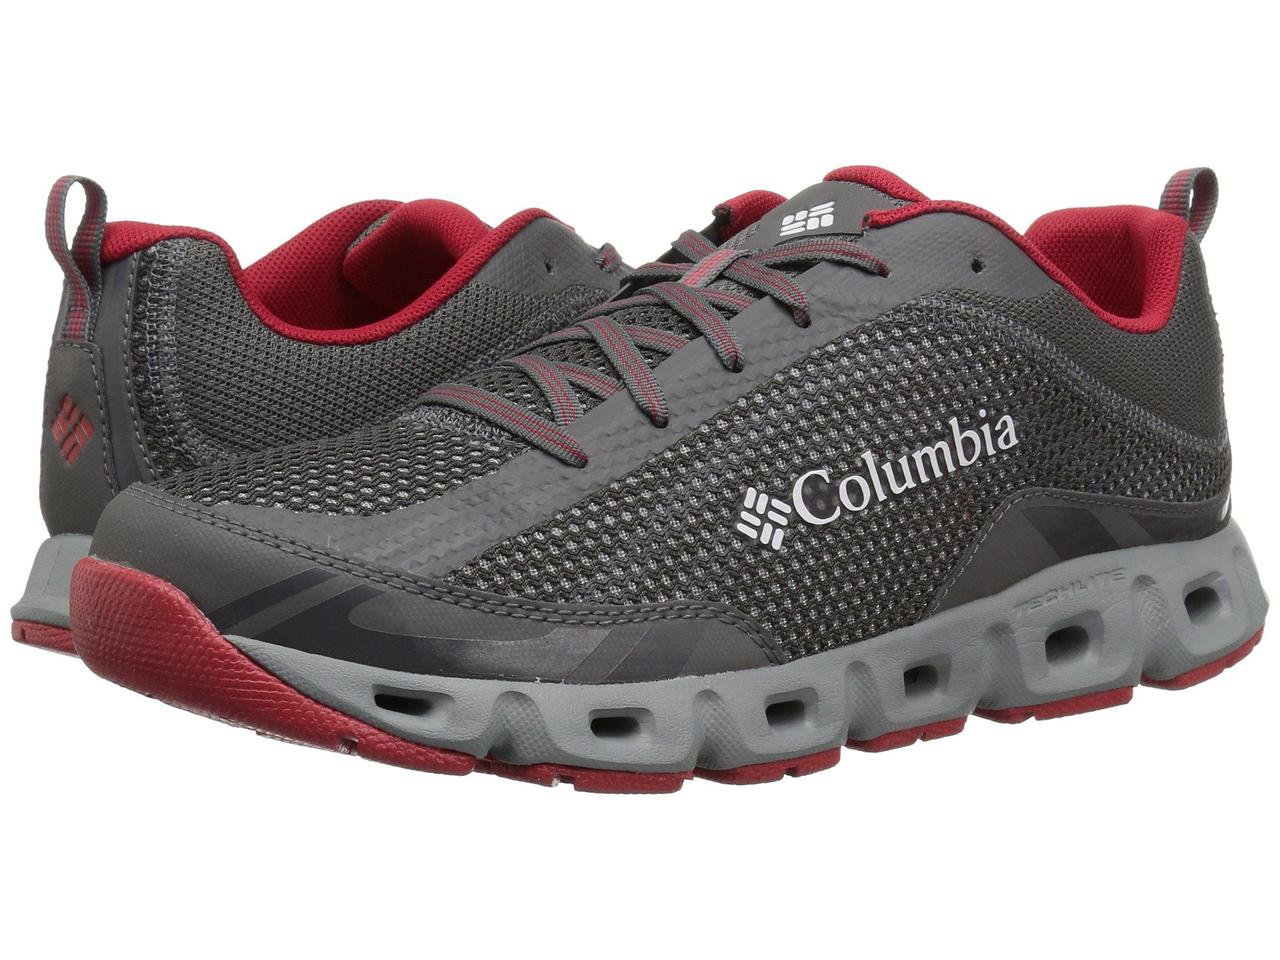 5c7a942d8 Кроссовки/Кеды (Оригинал) Columbia Drainmaker IV City Grey/Mountain Red